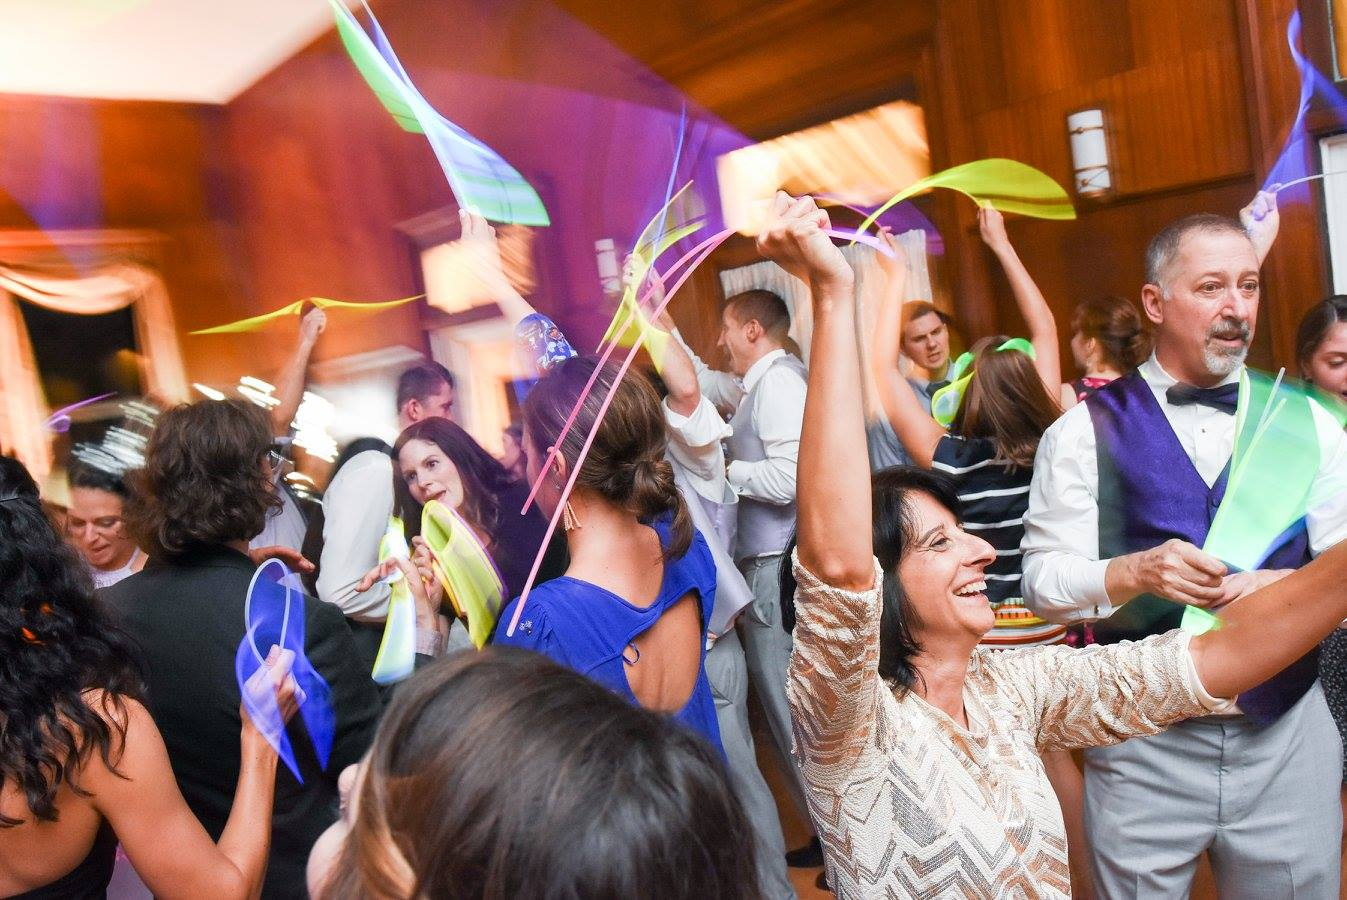 guests dance and wave glowsticks at wedding